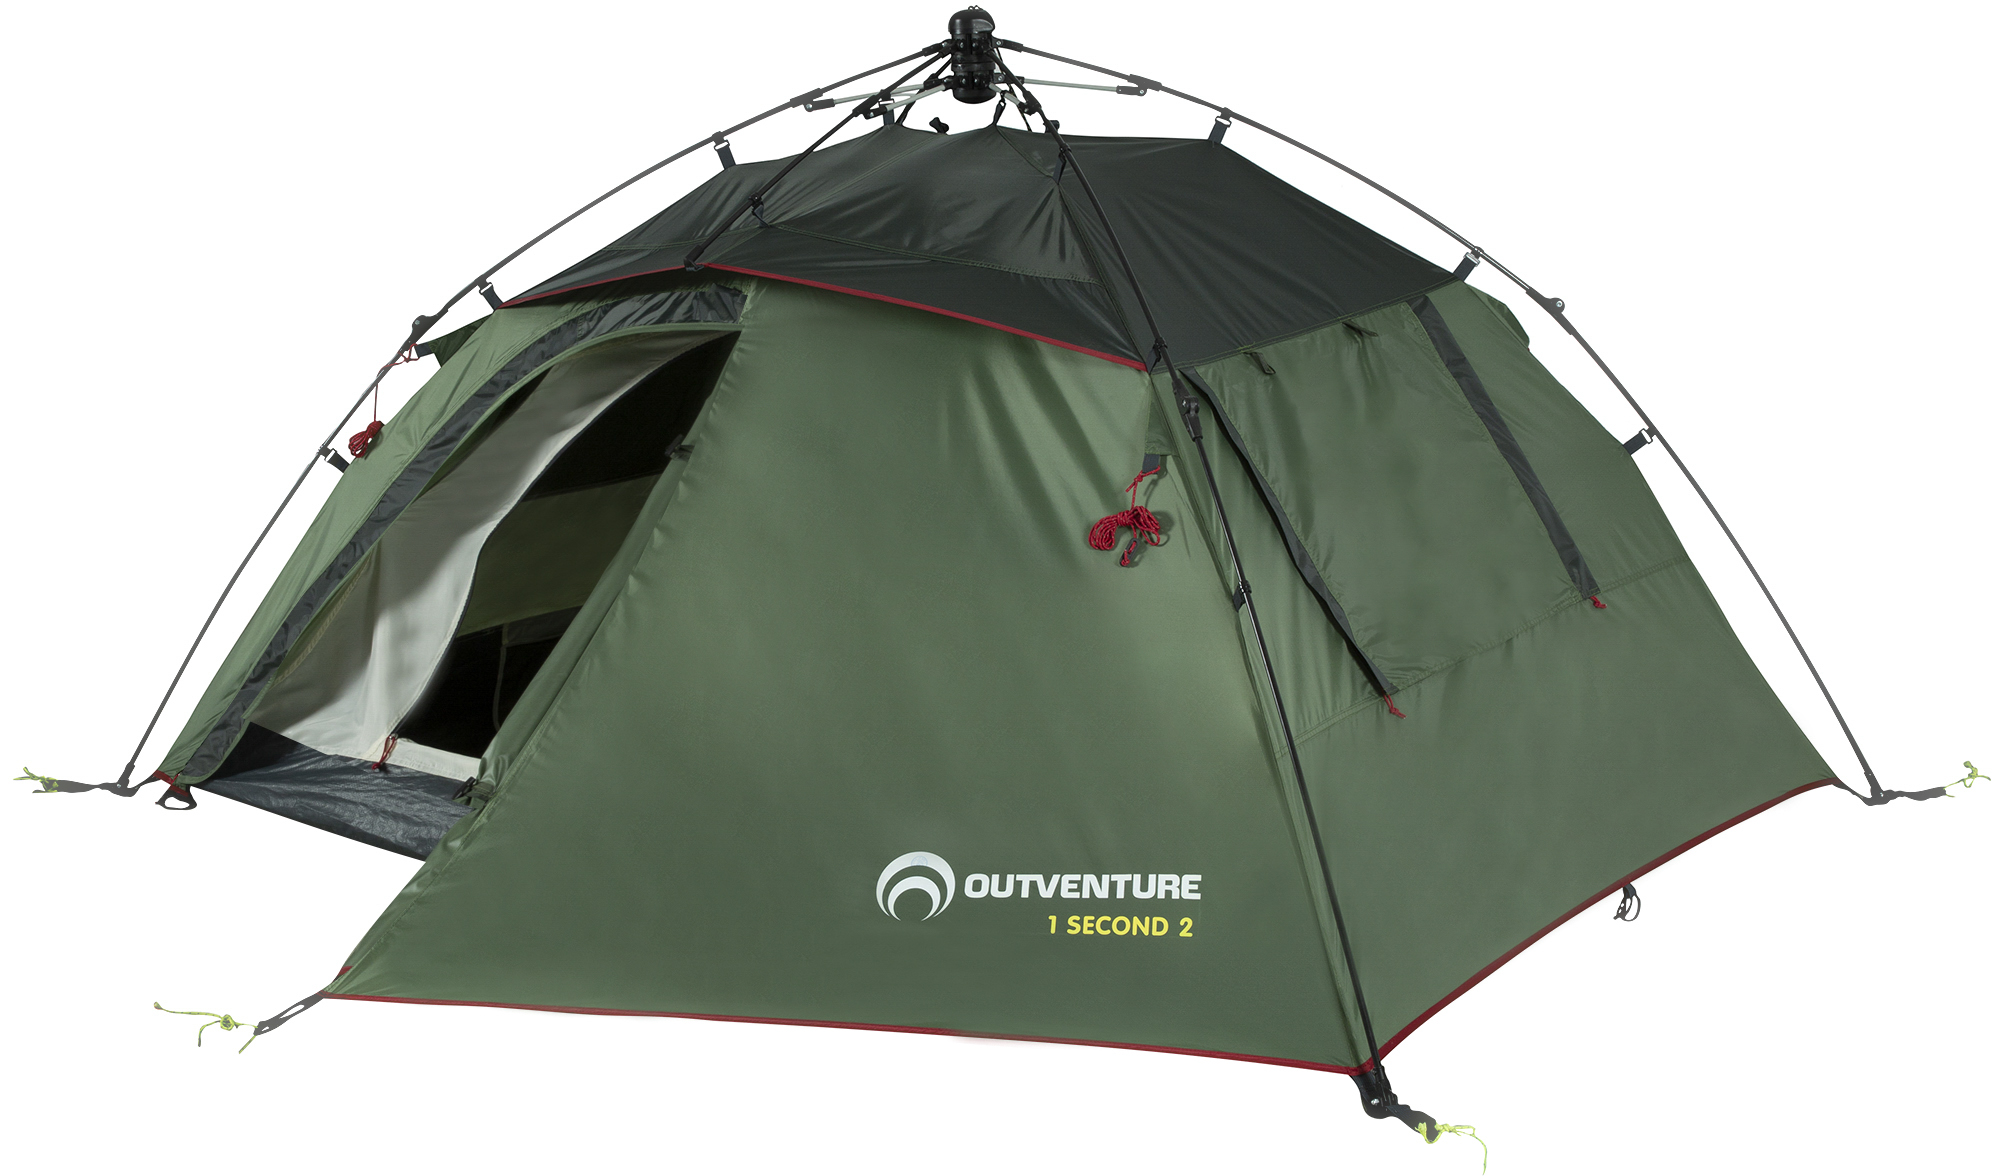 лучшая цена Outventure 1 SECOND TENT 2